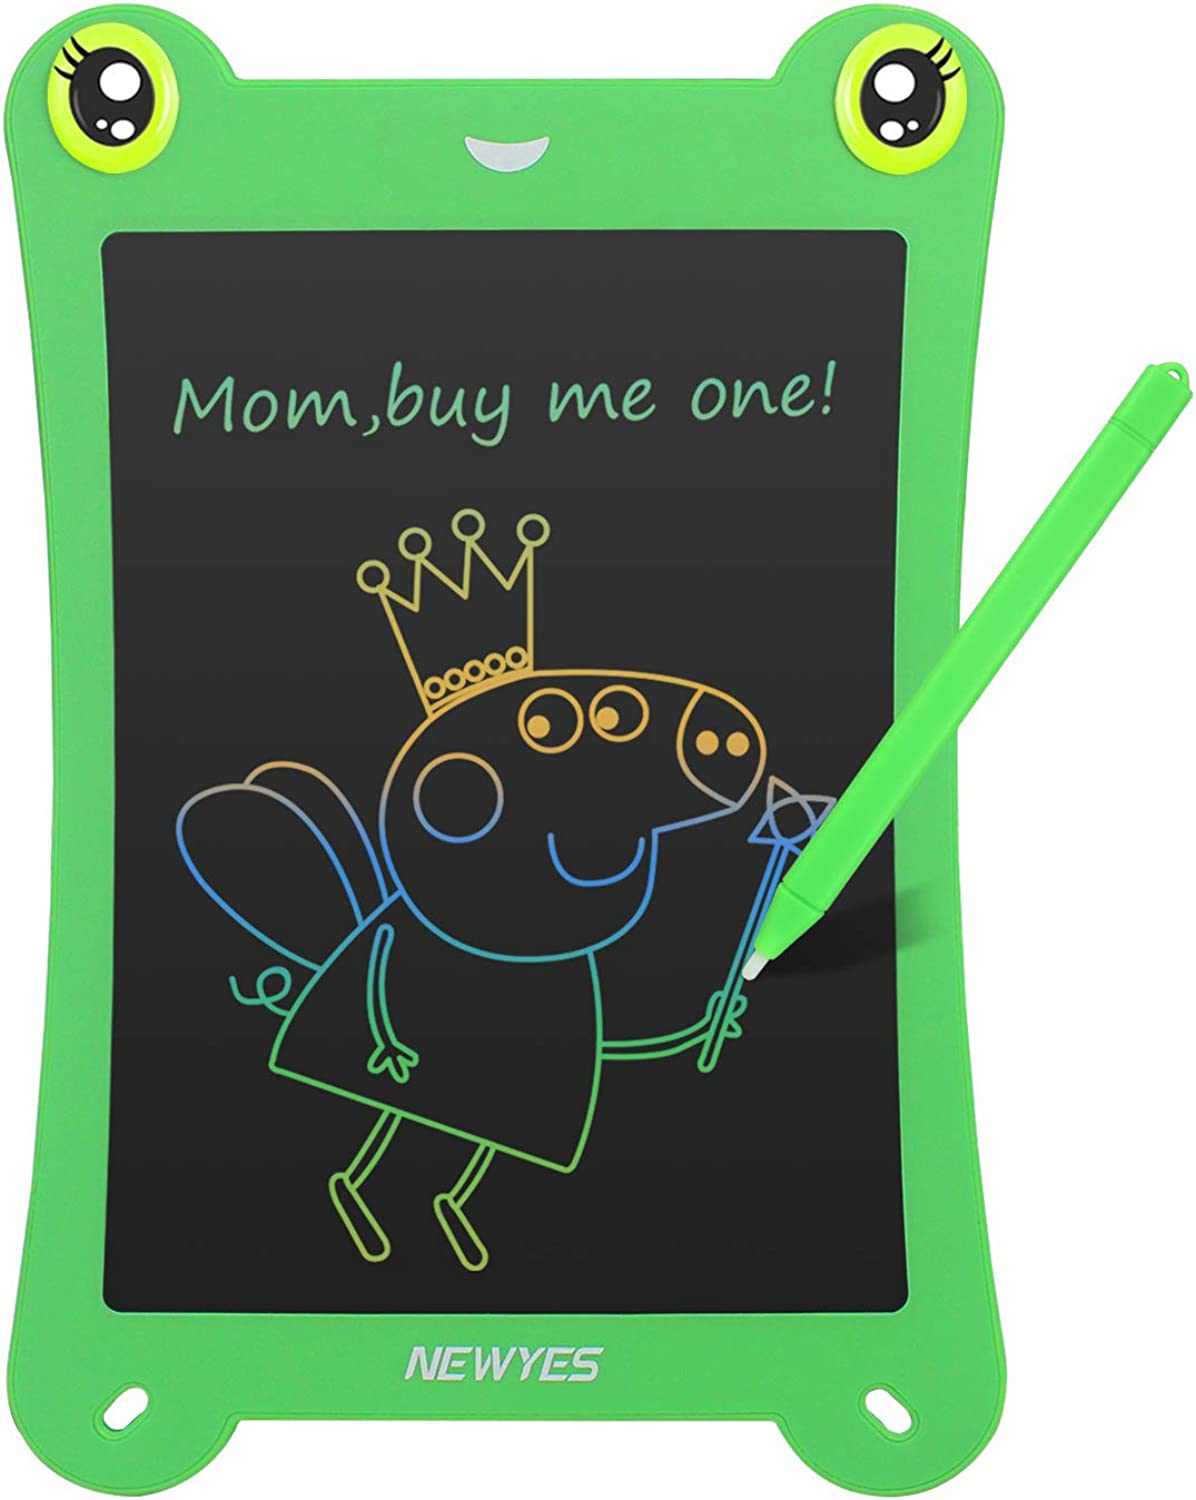 NEWYES 8.5 Inch colorful Frogpad Doodle Pad Drawing Board LCD Writing Tablet for Kids and Adults (Green)